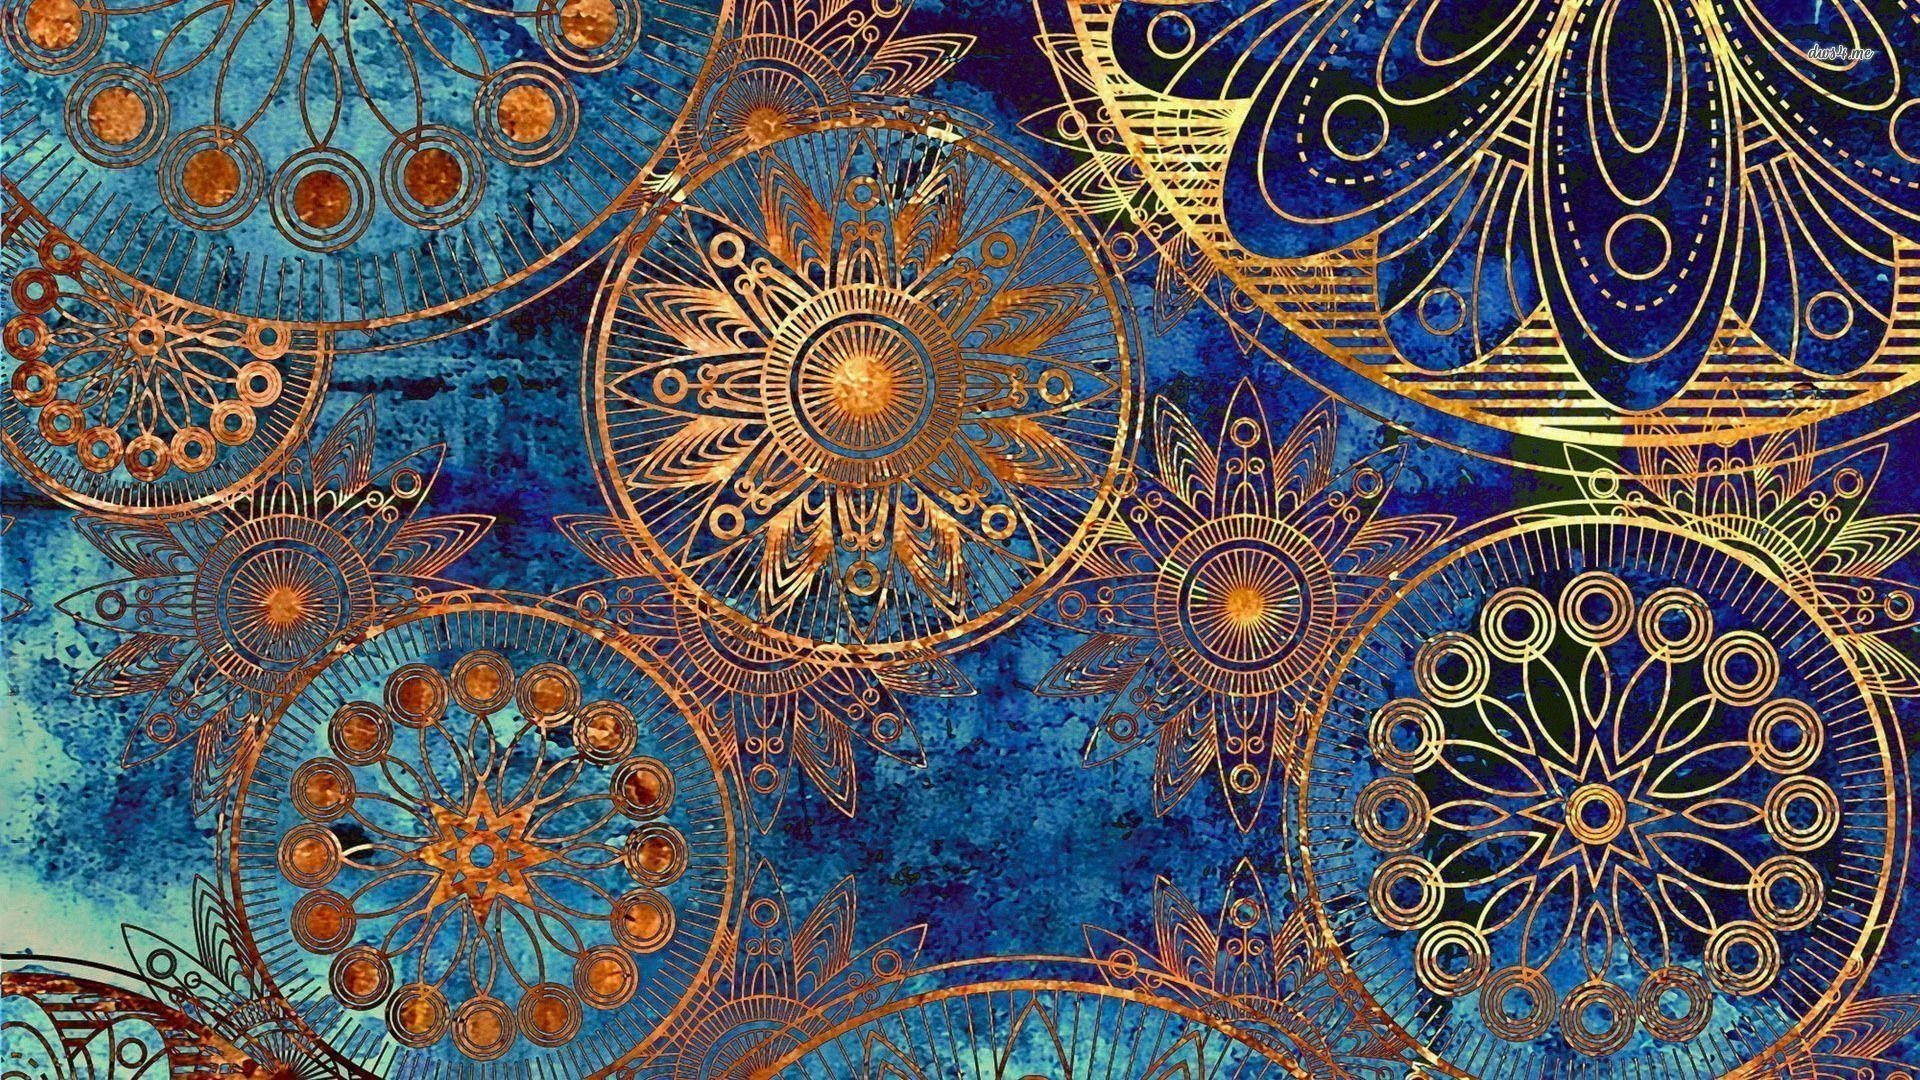 Res: 1920x1080, Art & Creative Wallpapers. Download the following Mandala Wallpaper ...